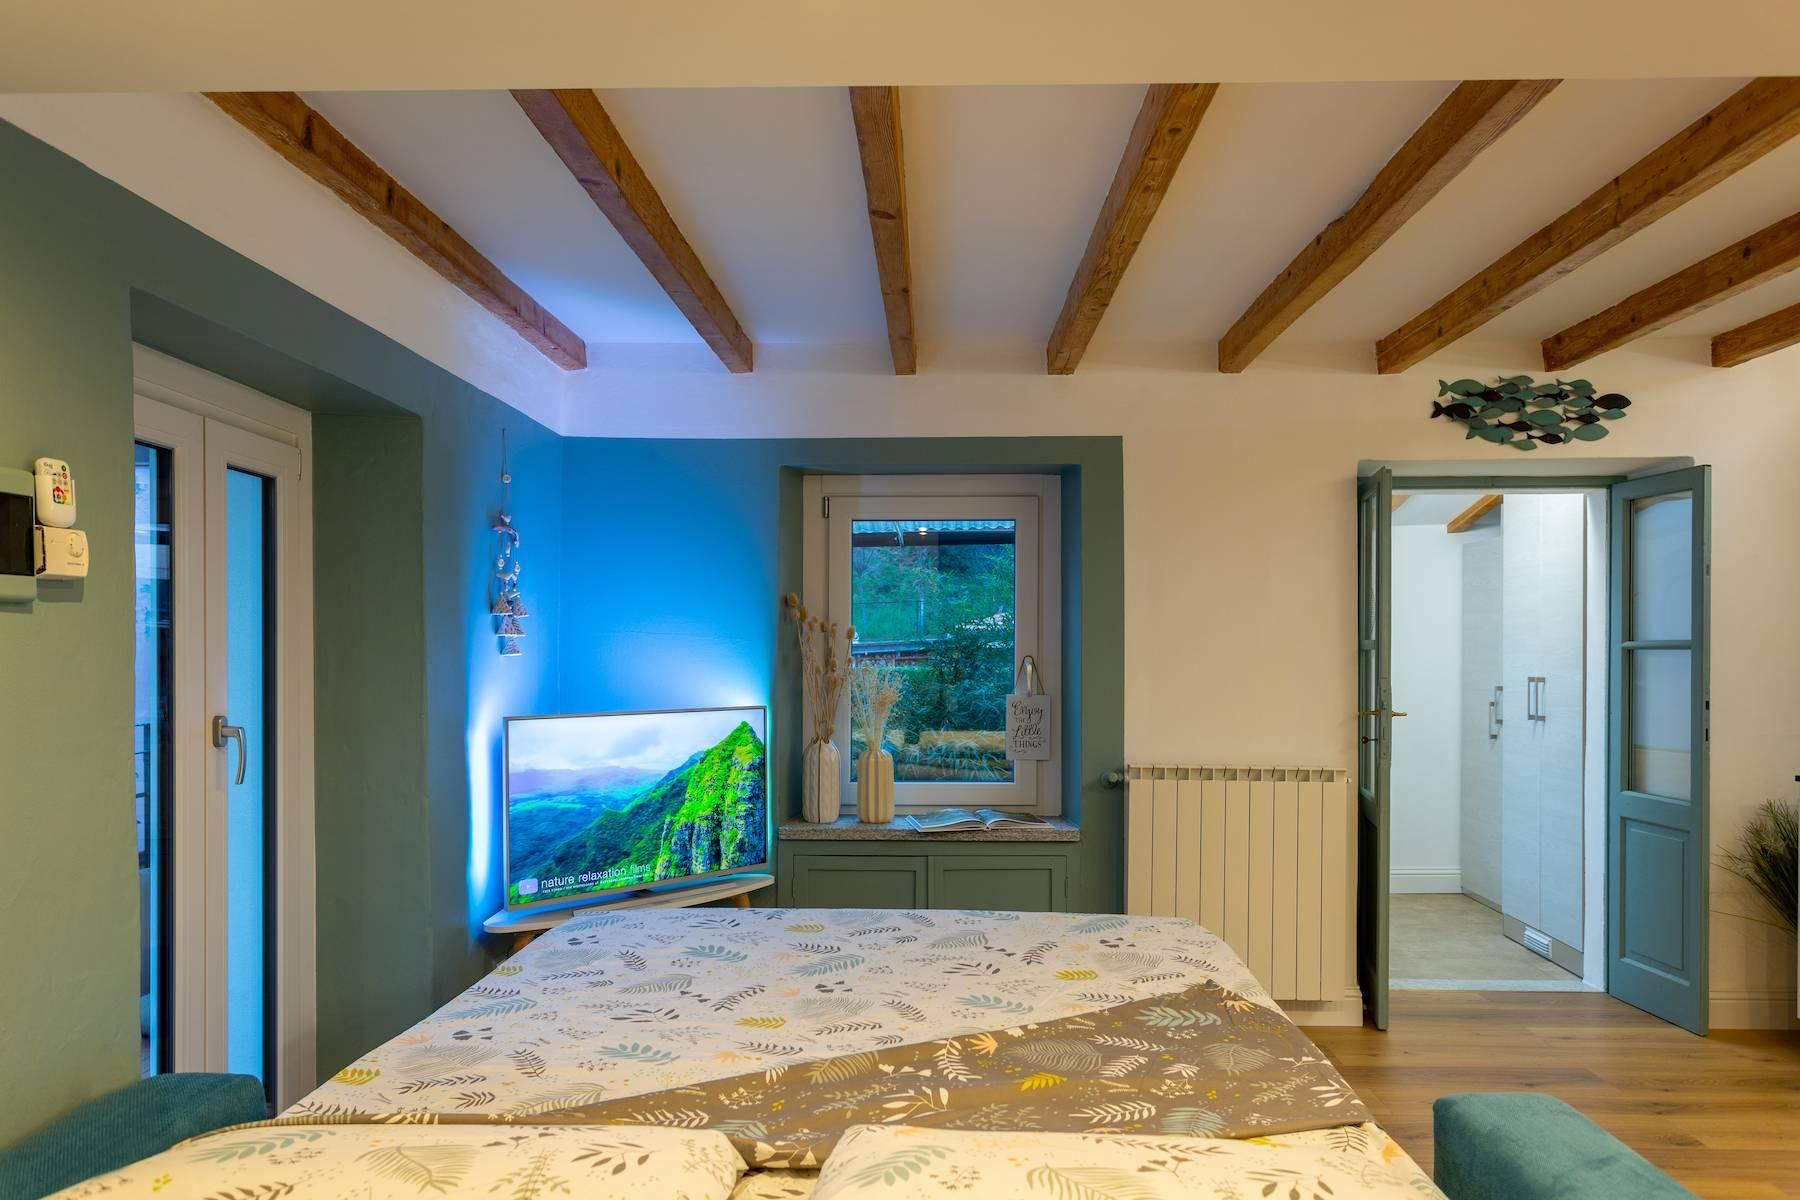 Inviting apartment in Belgirate with view of Lake Maggiore - 15